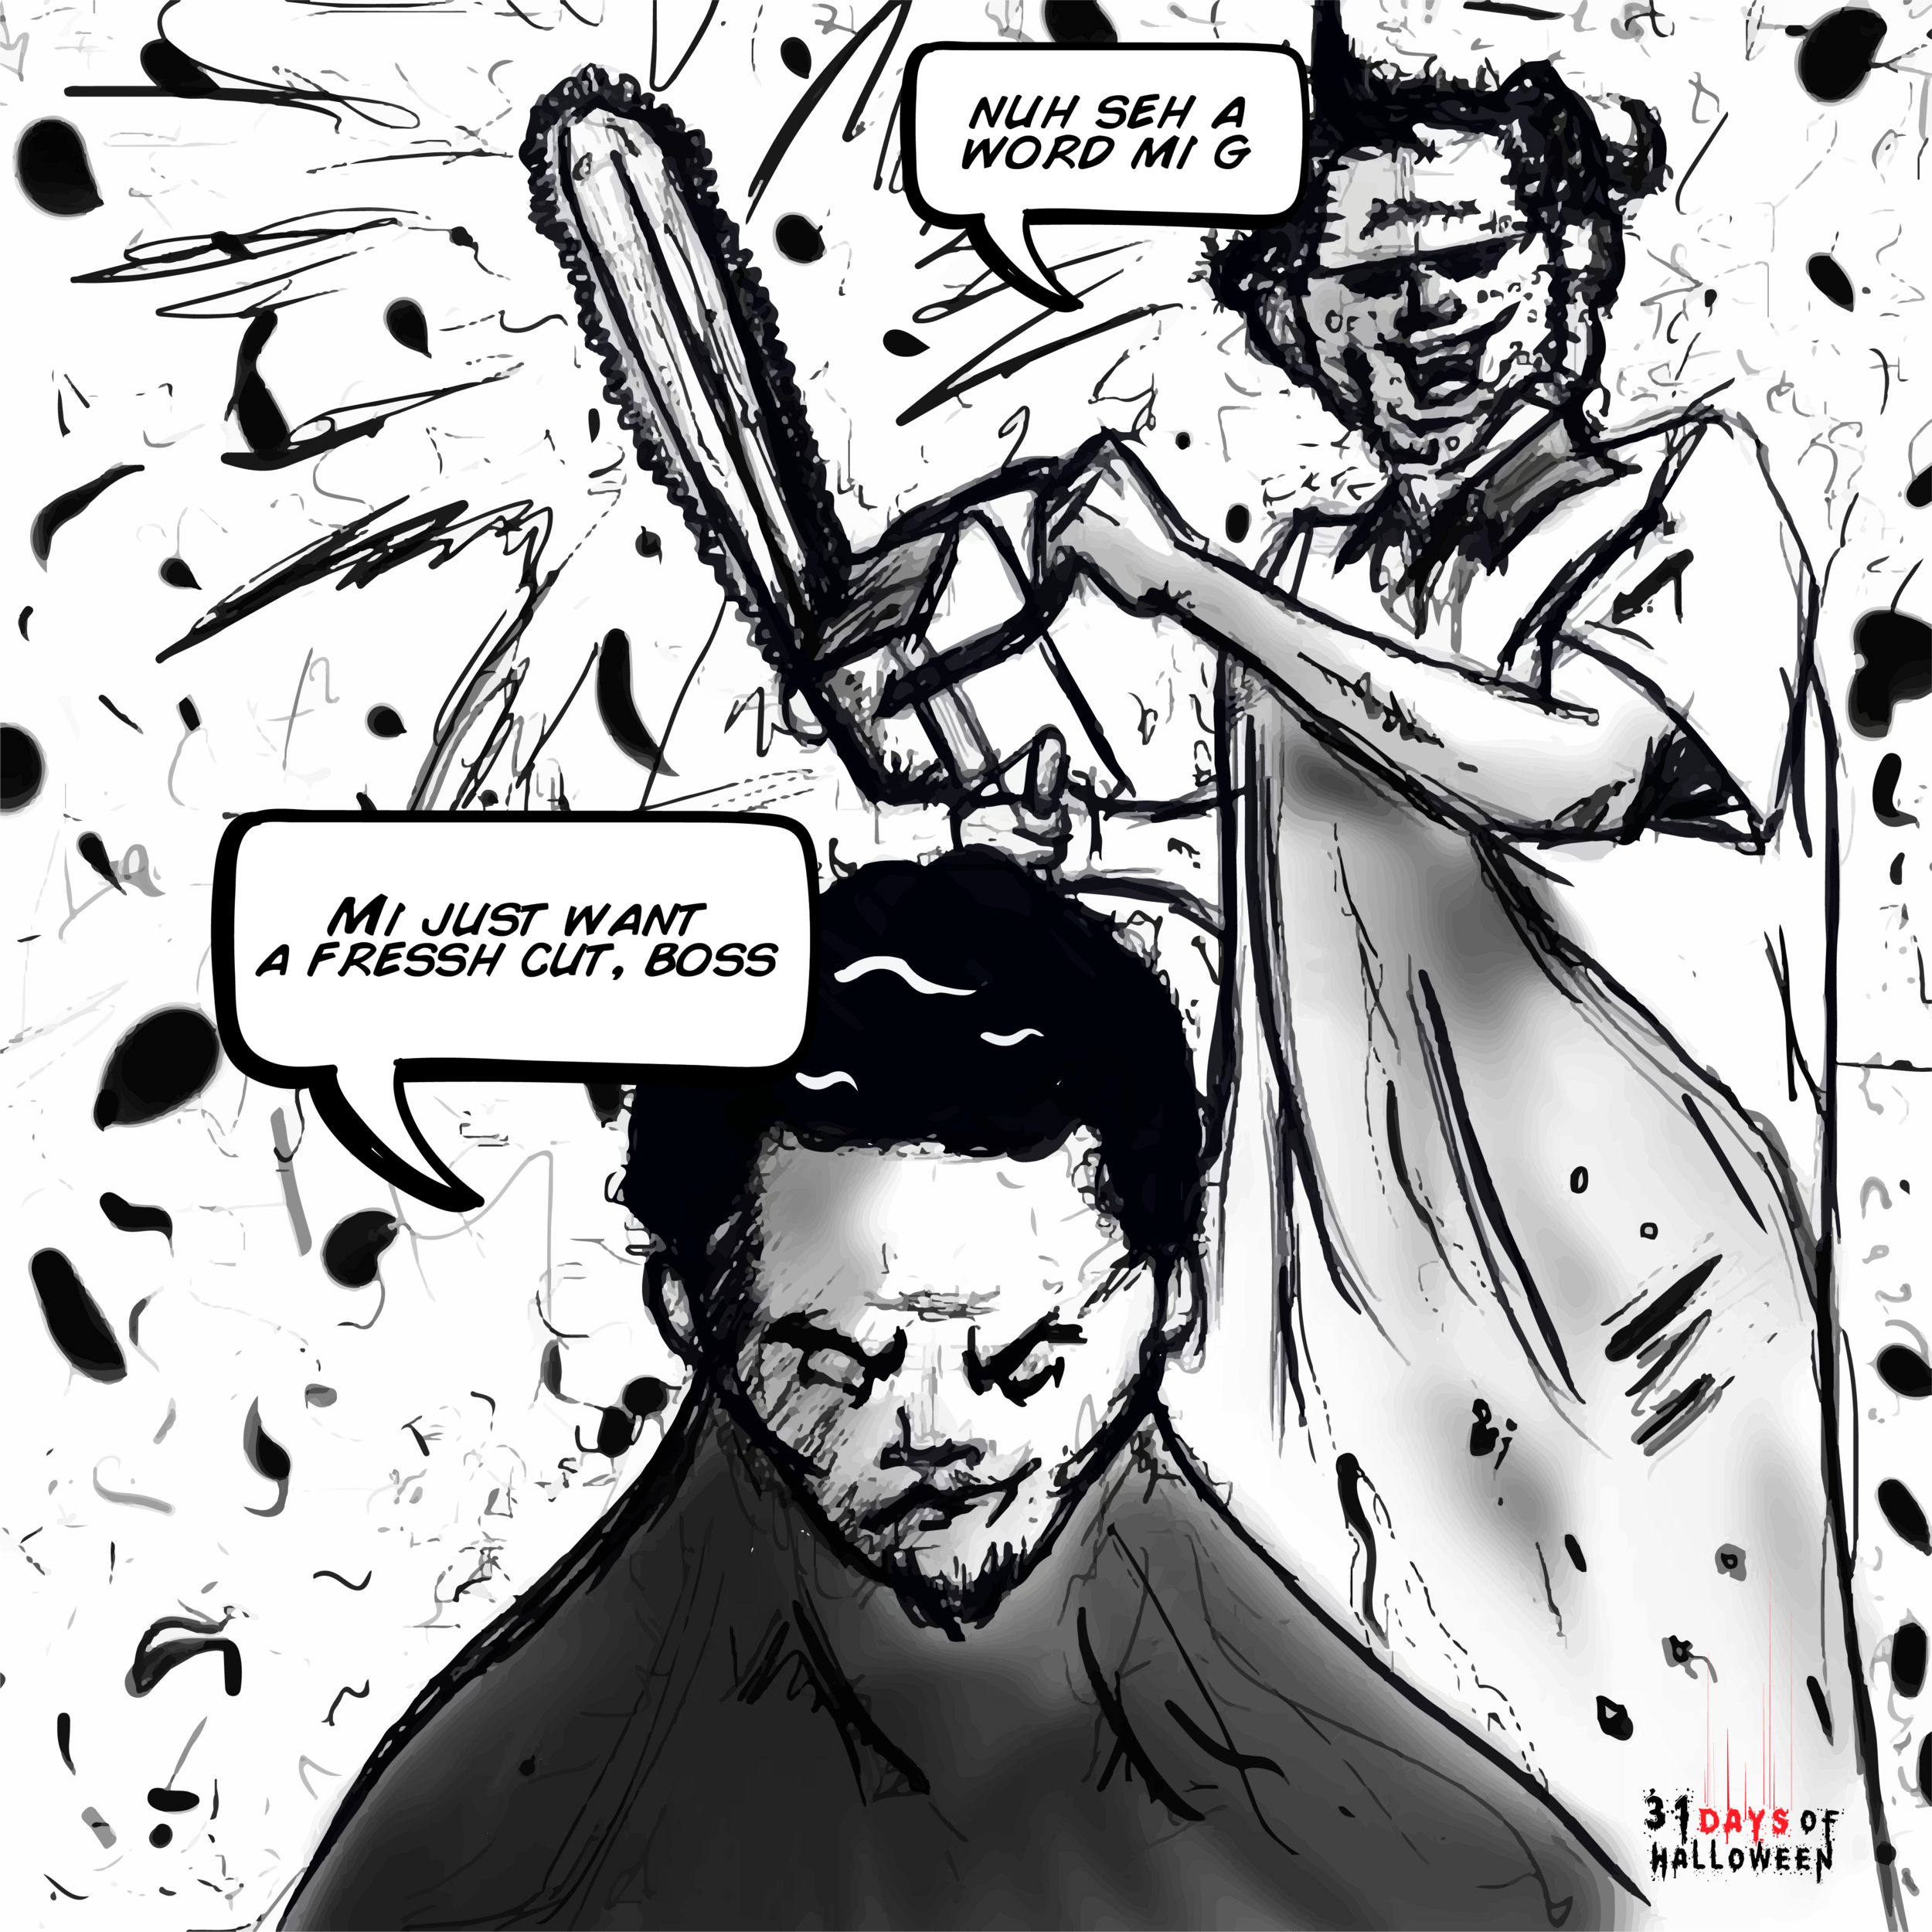 Day 24 - Leatherface (Texas Chainsaw Massacre)